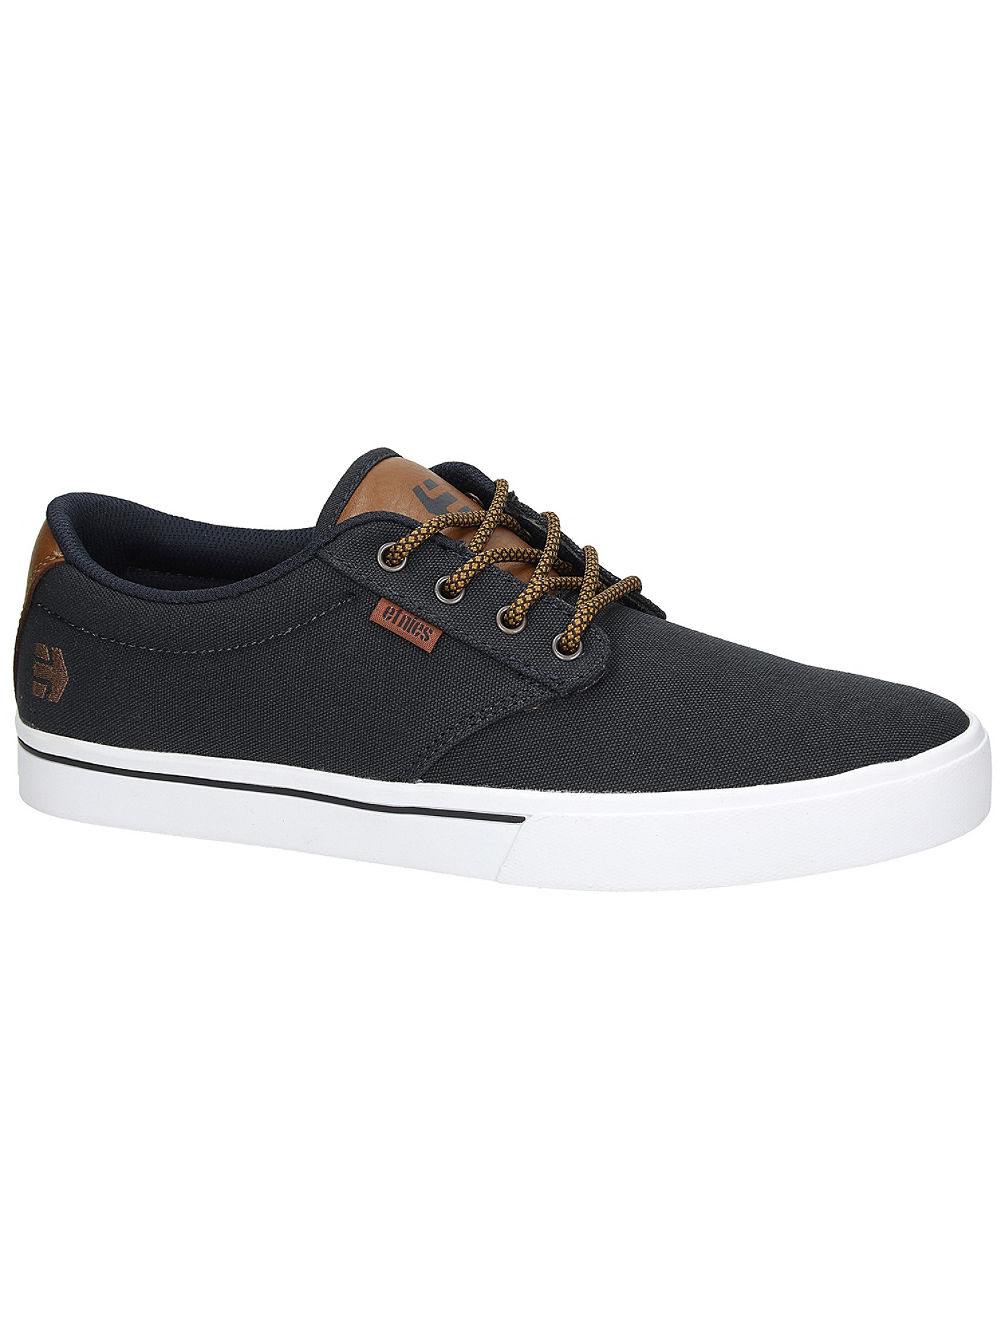 Jameson 2 Eco Sneakers